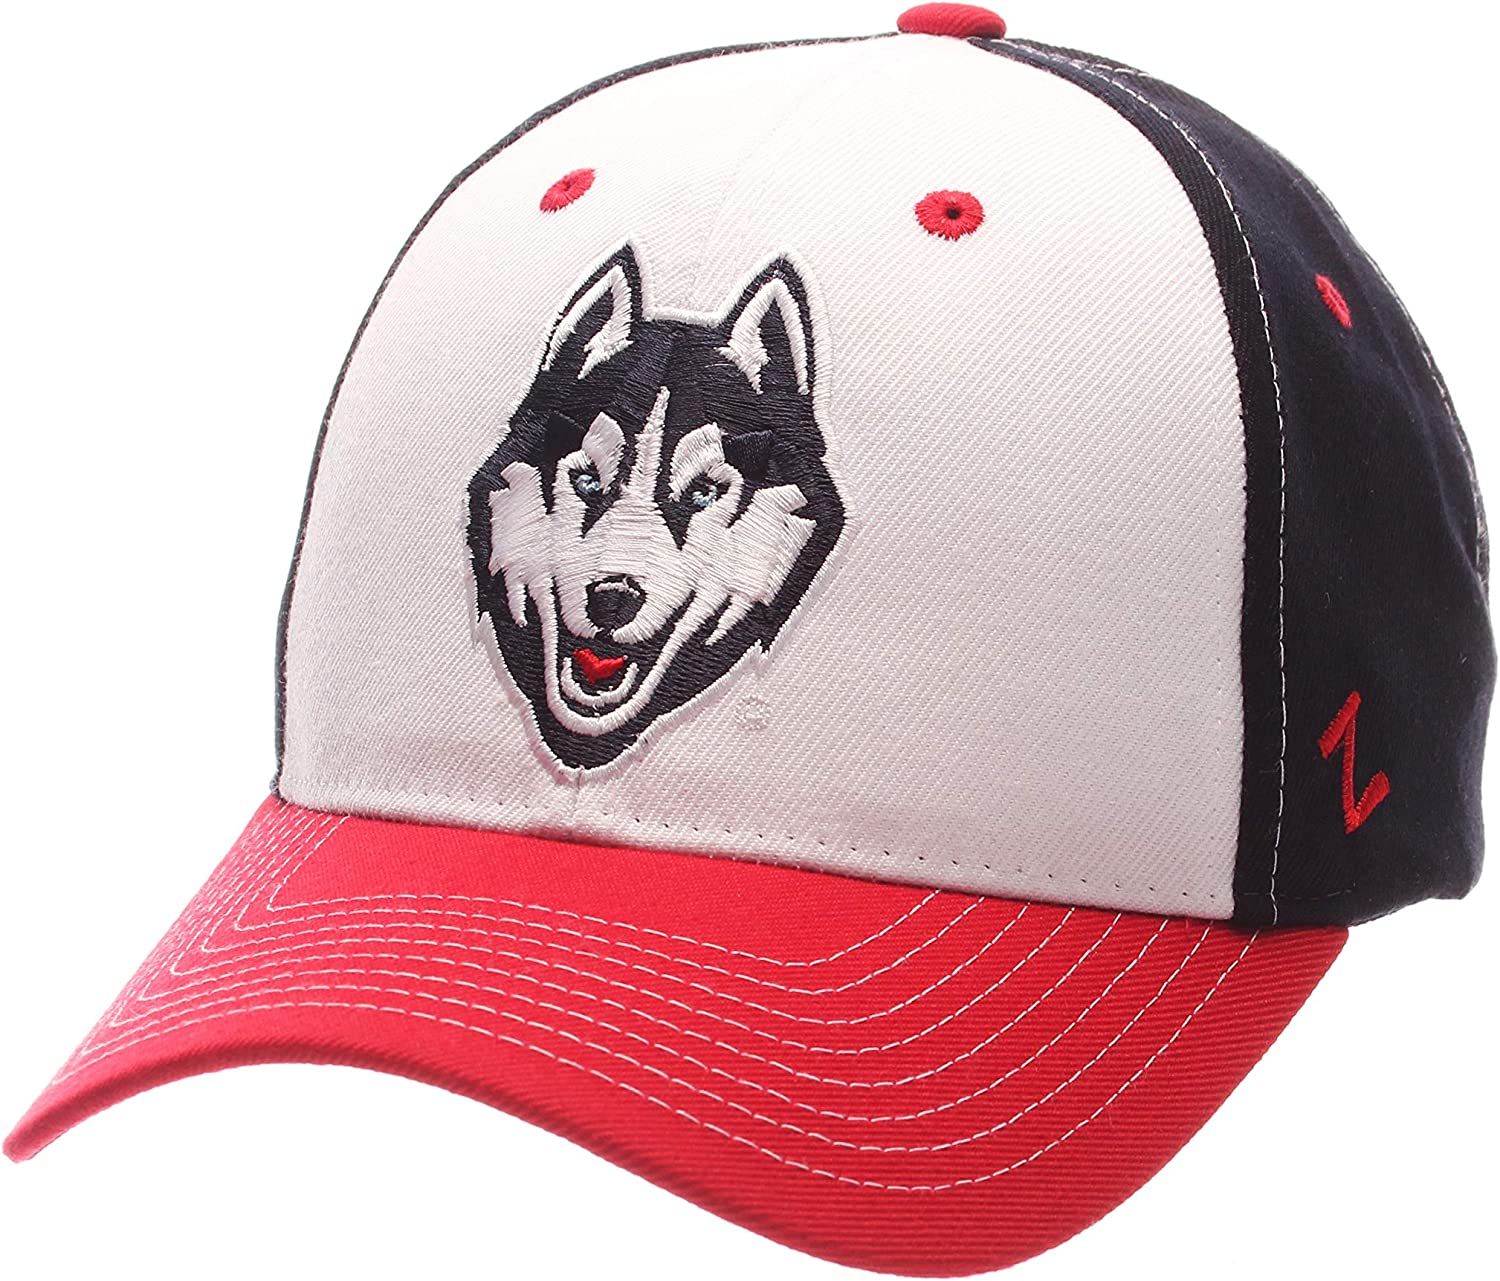 Zephyr Staple Relaxed Fit Dad Cap NCAA One Size Adjustable Baseball Hat